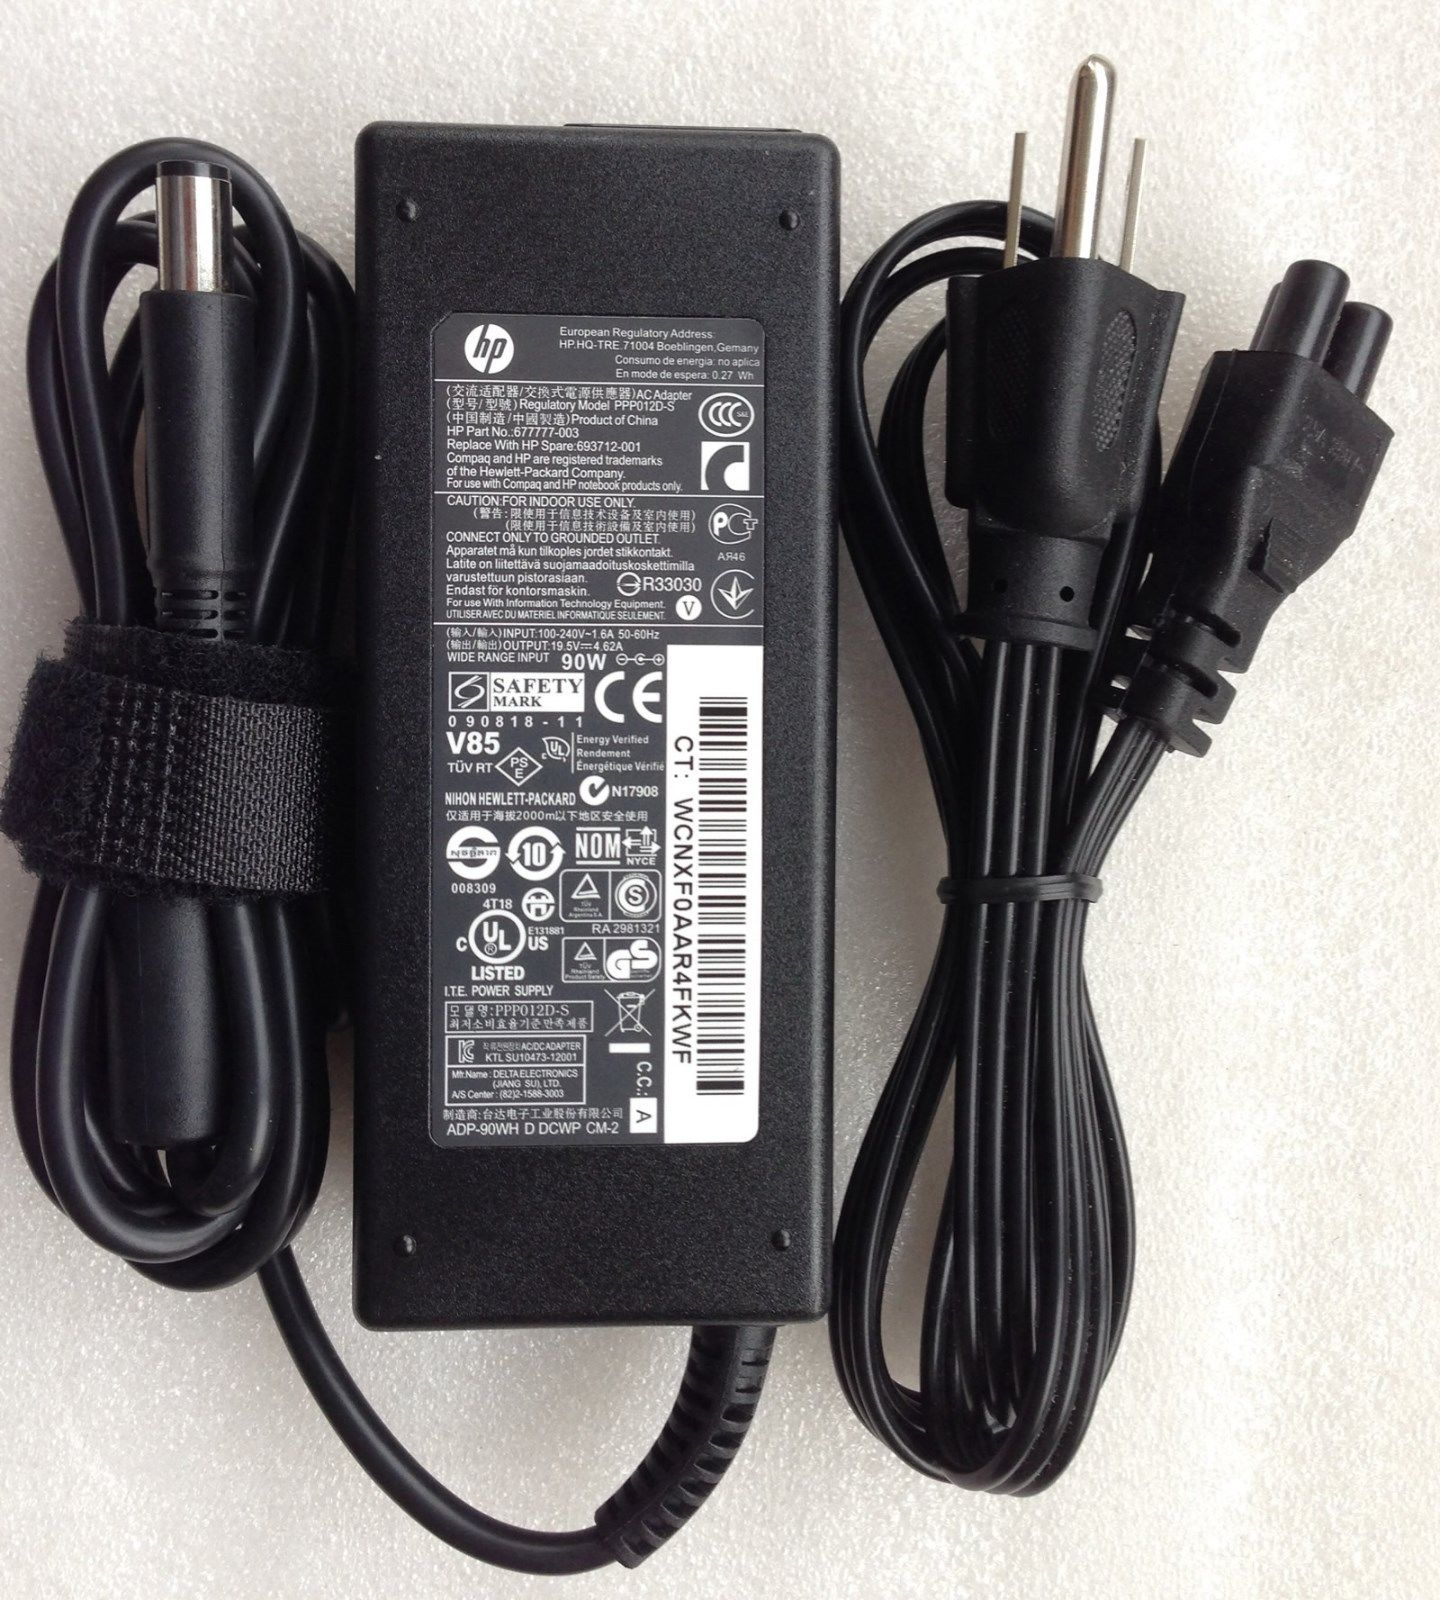 19.5V HP ENVY m6-1184ca 693712-001 Chargeurs